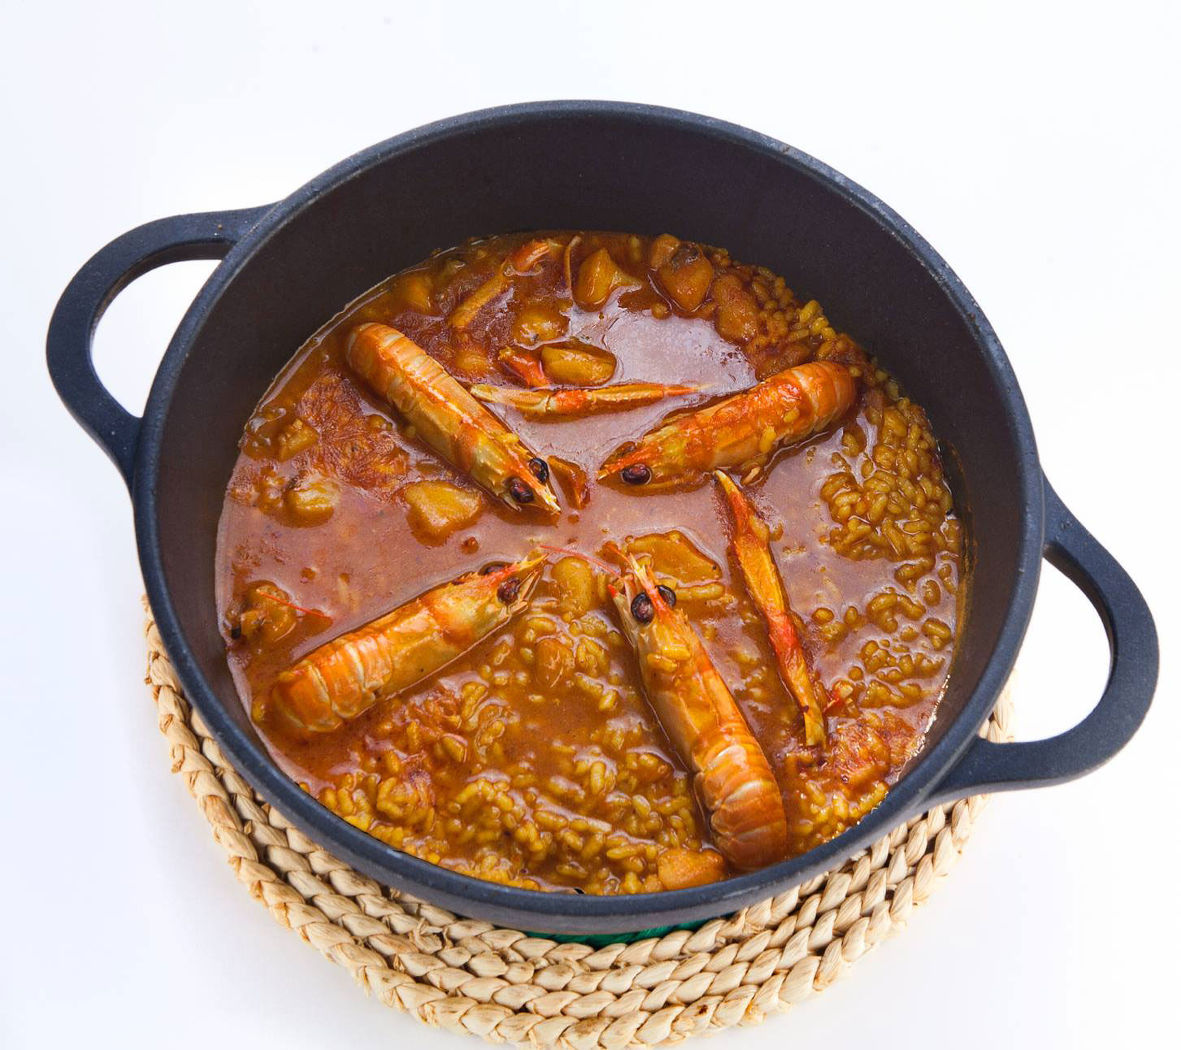 Restaurante Alicante Juan Abril - Platos - Arroz meloso con rape y cigalas